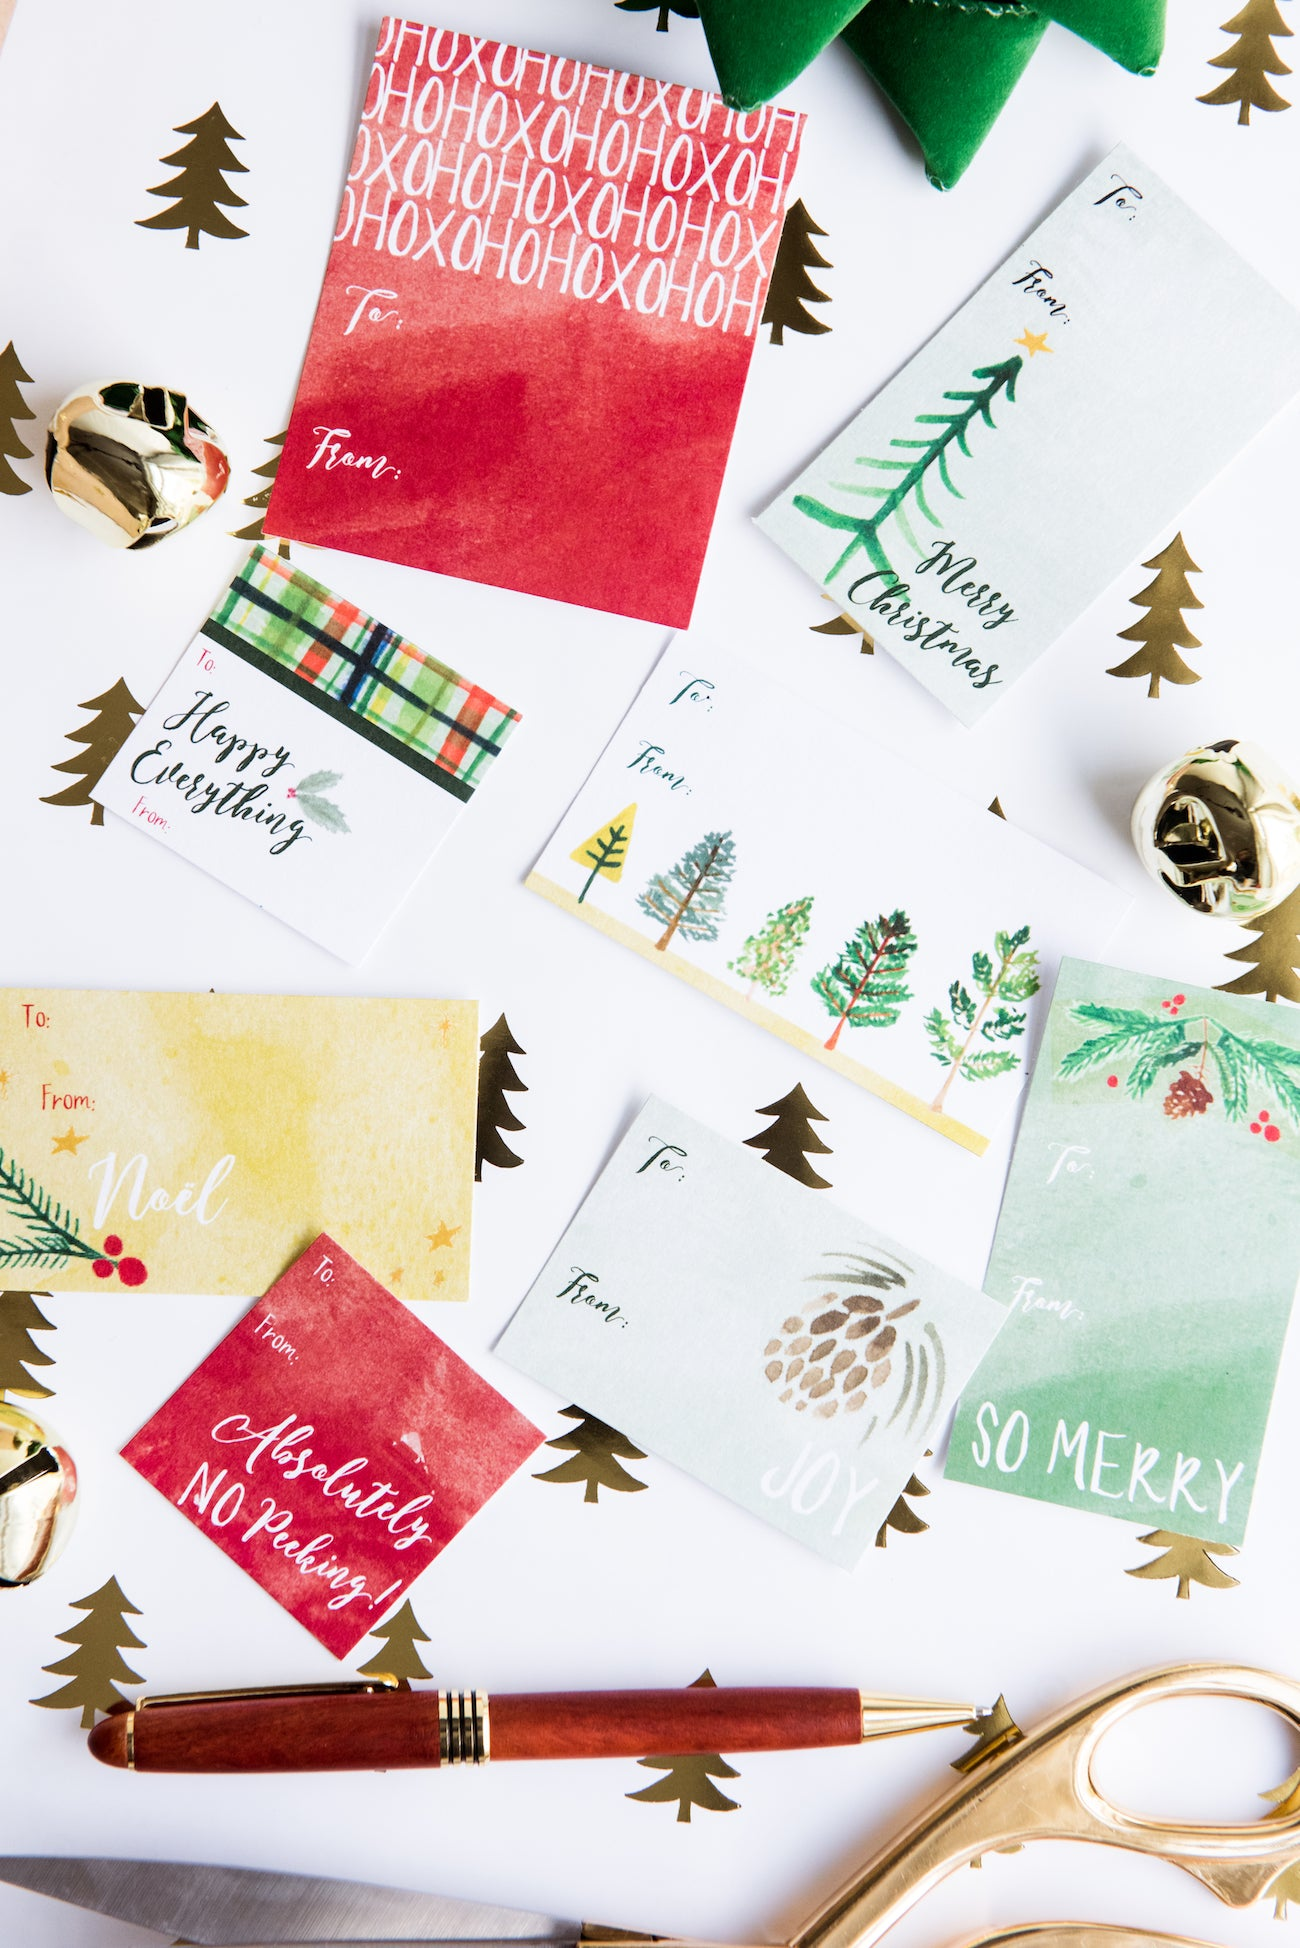 Free christmas gift tag printables by Erika Firm for The Sweetest Occasion and Staples.